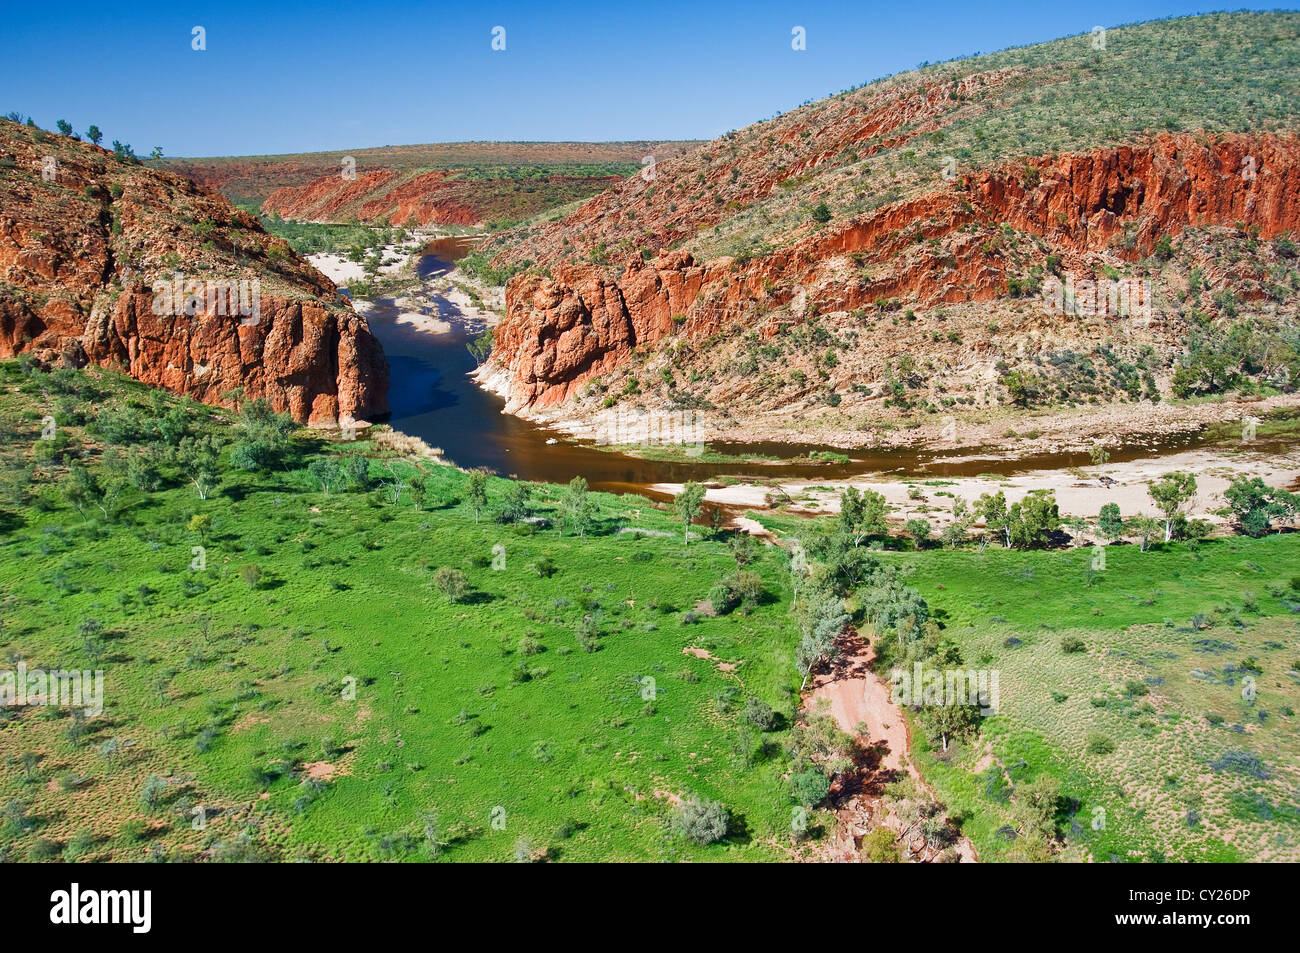 Aerial of Glen Helen Gorge gap. - Stock Image